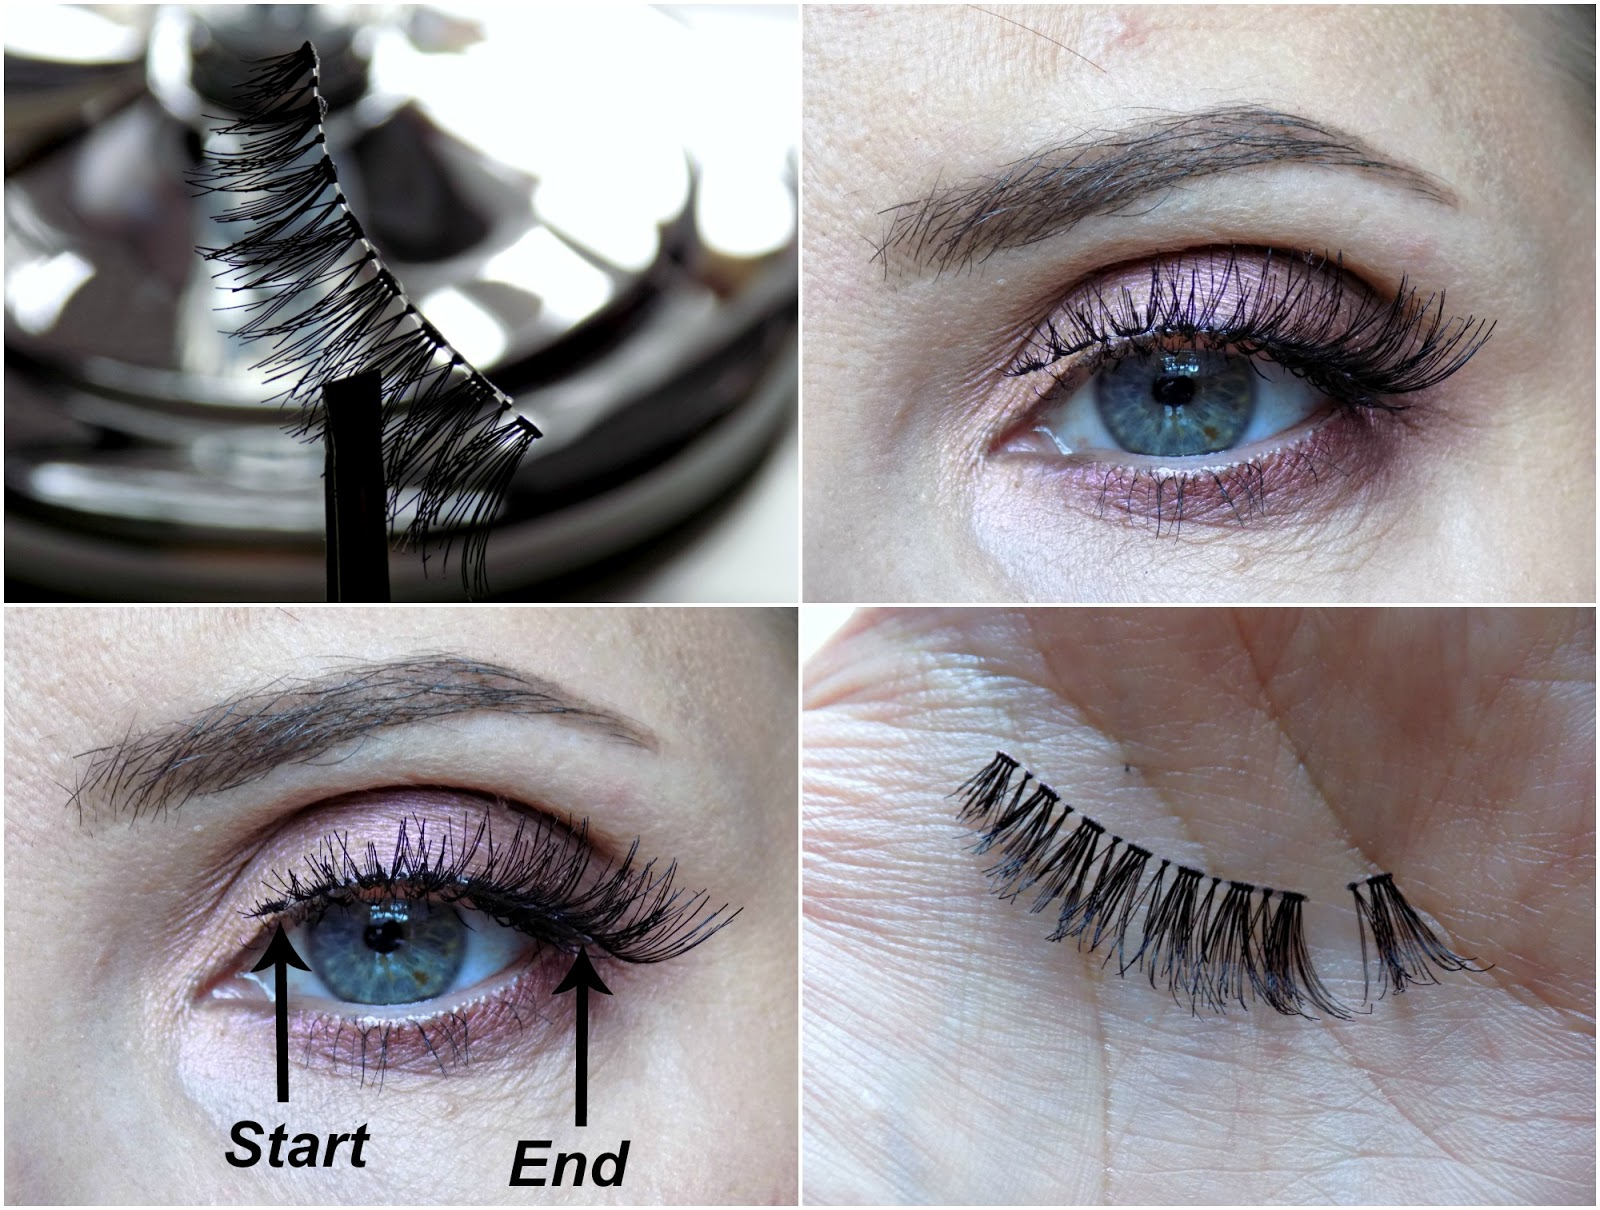 How to apply false lashes?